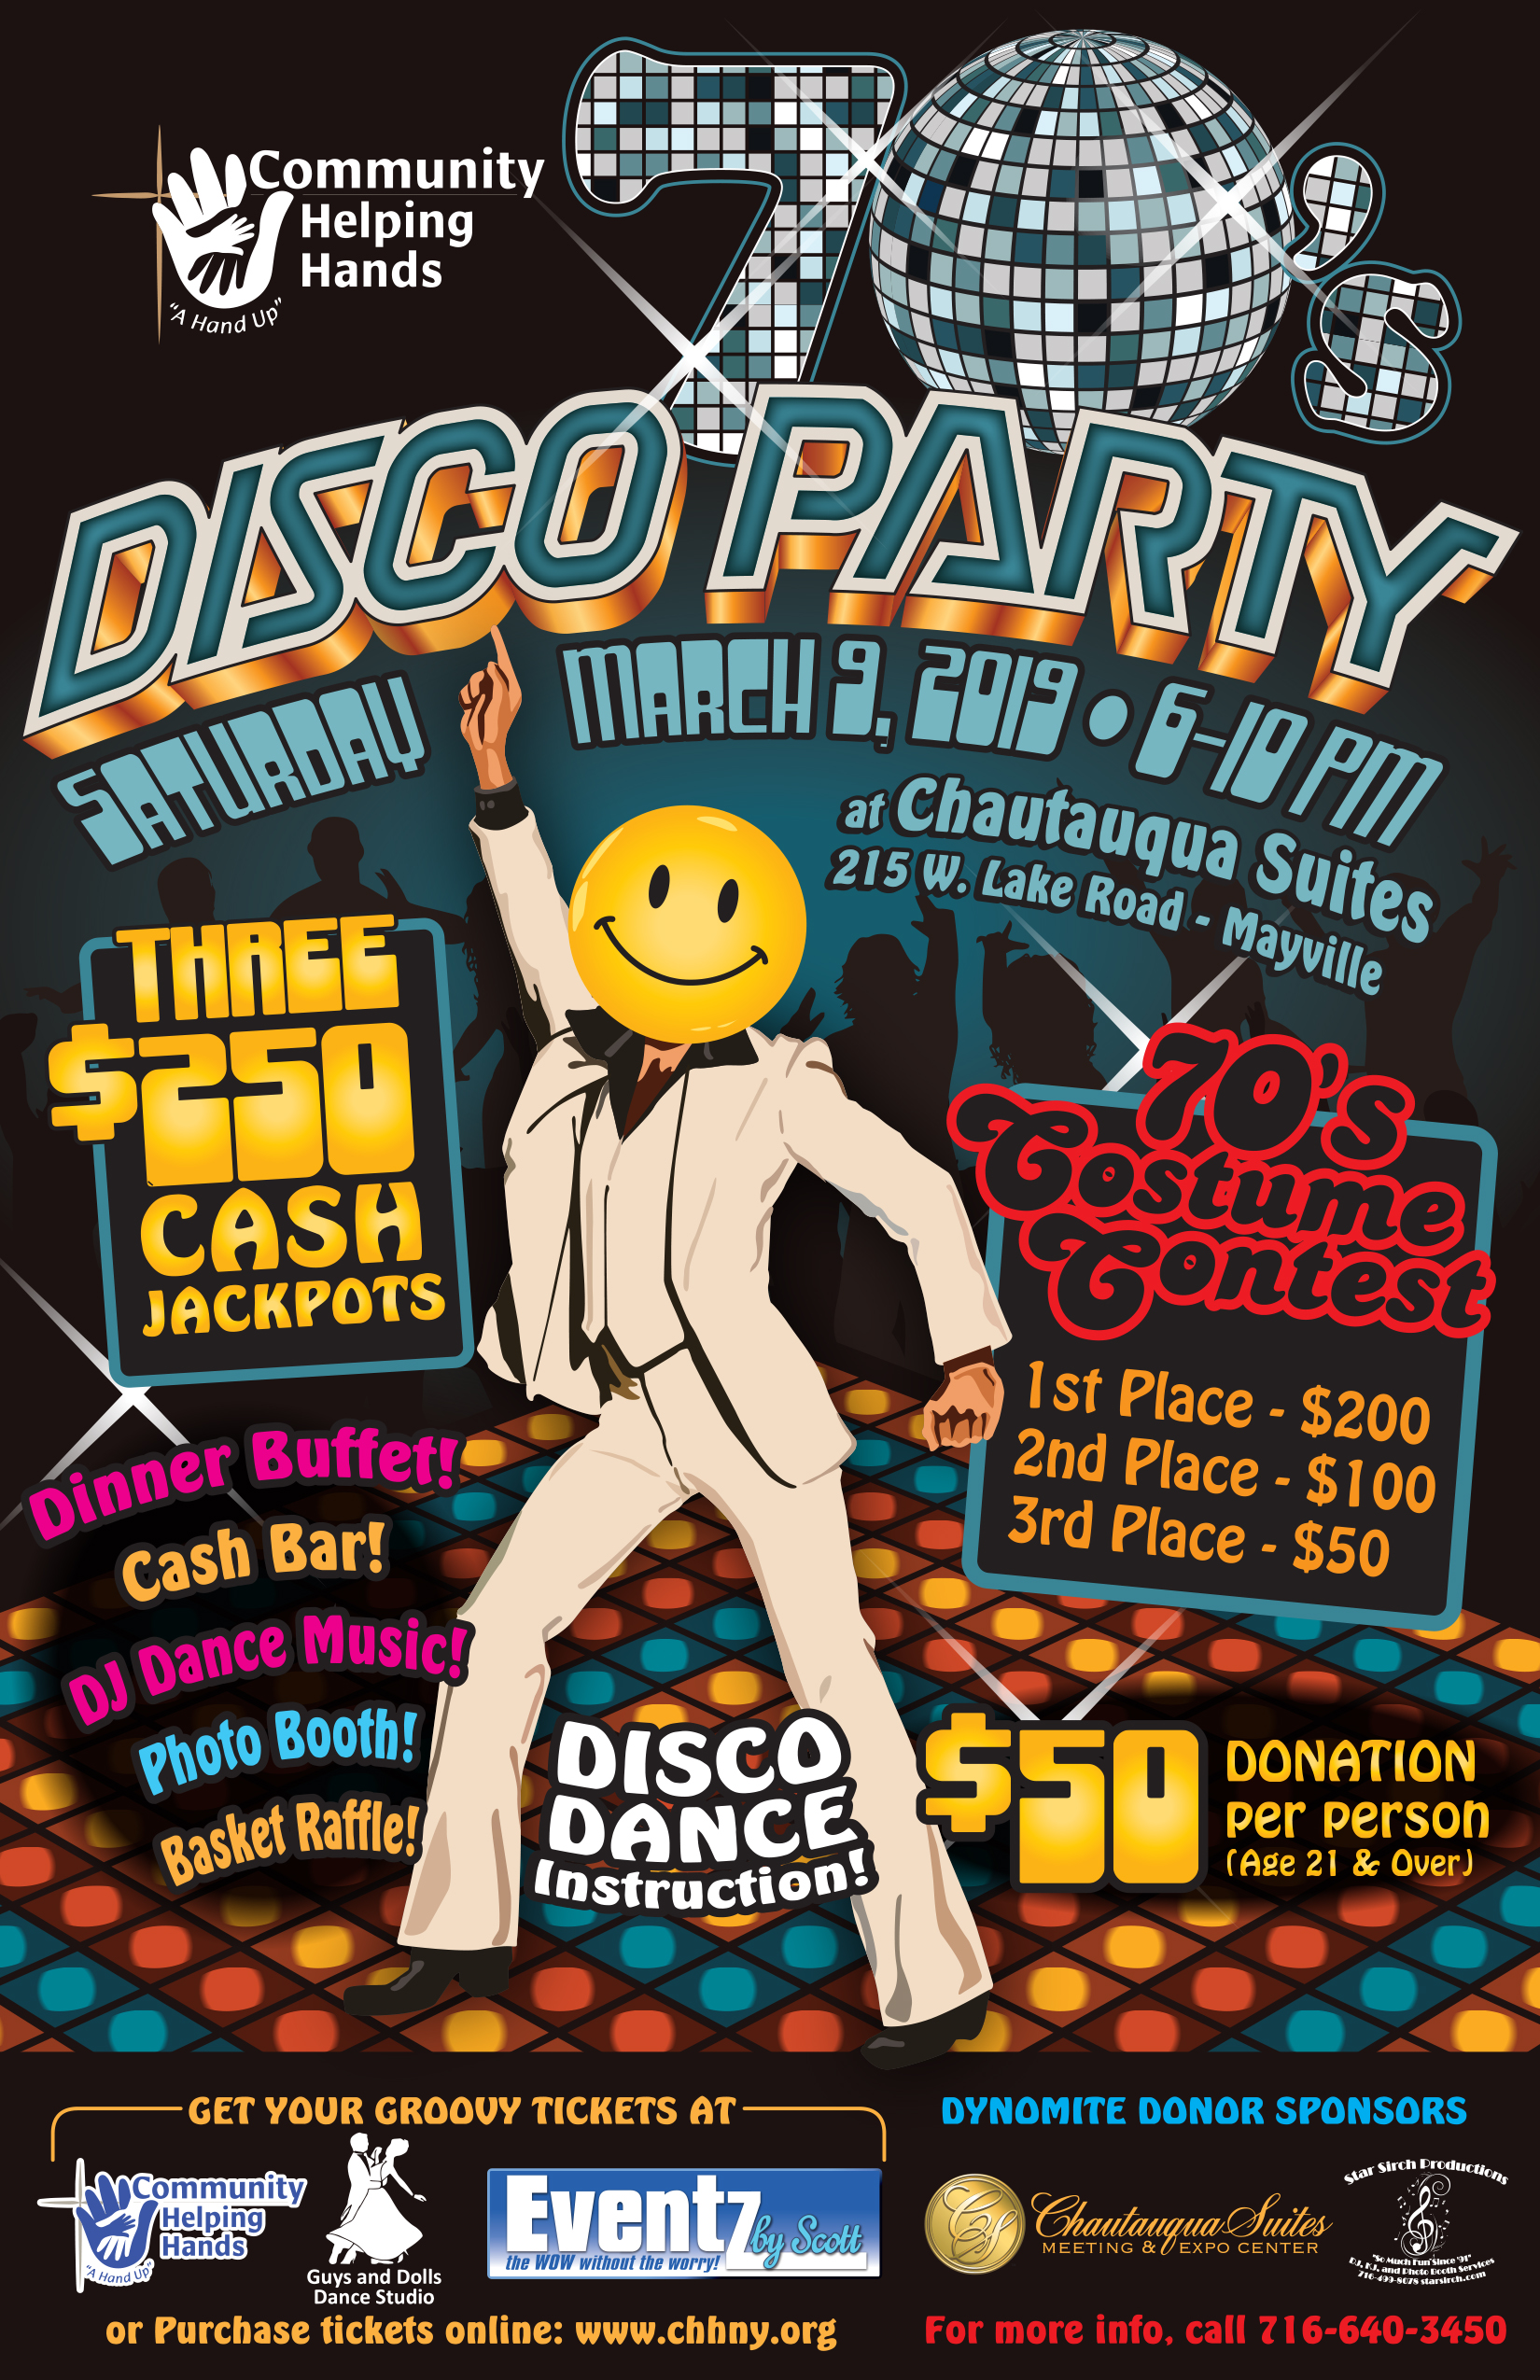 70s Disco Party Fundraiser - Community Helping Hands